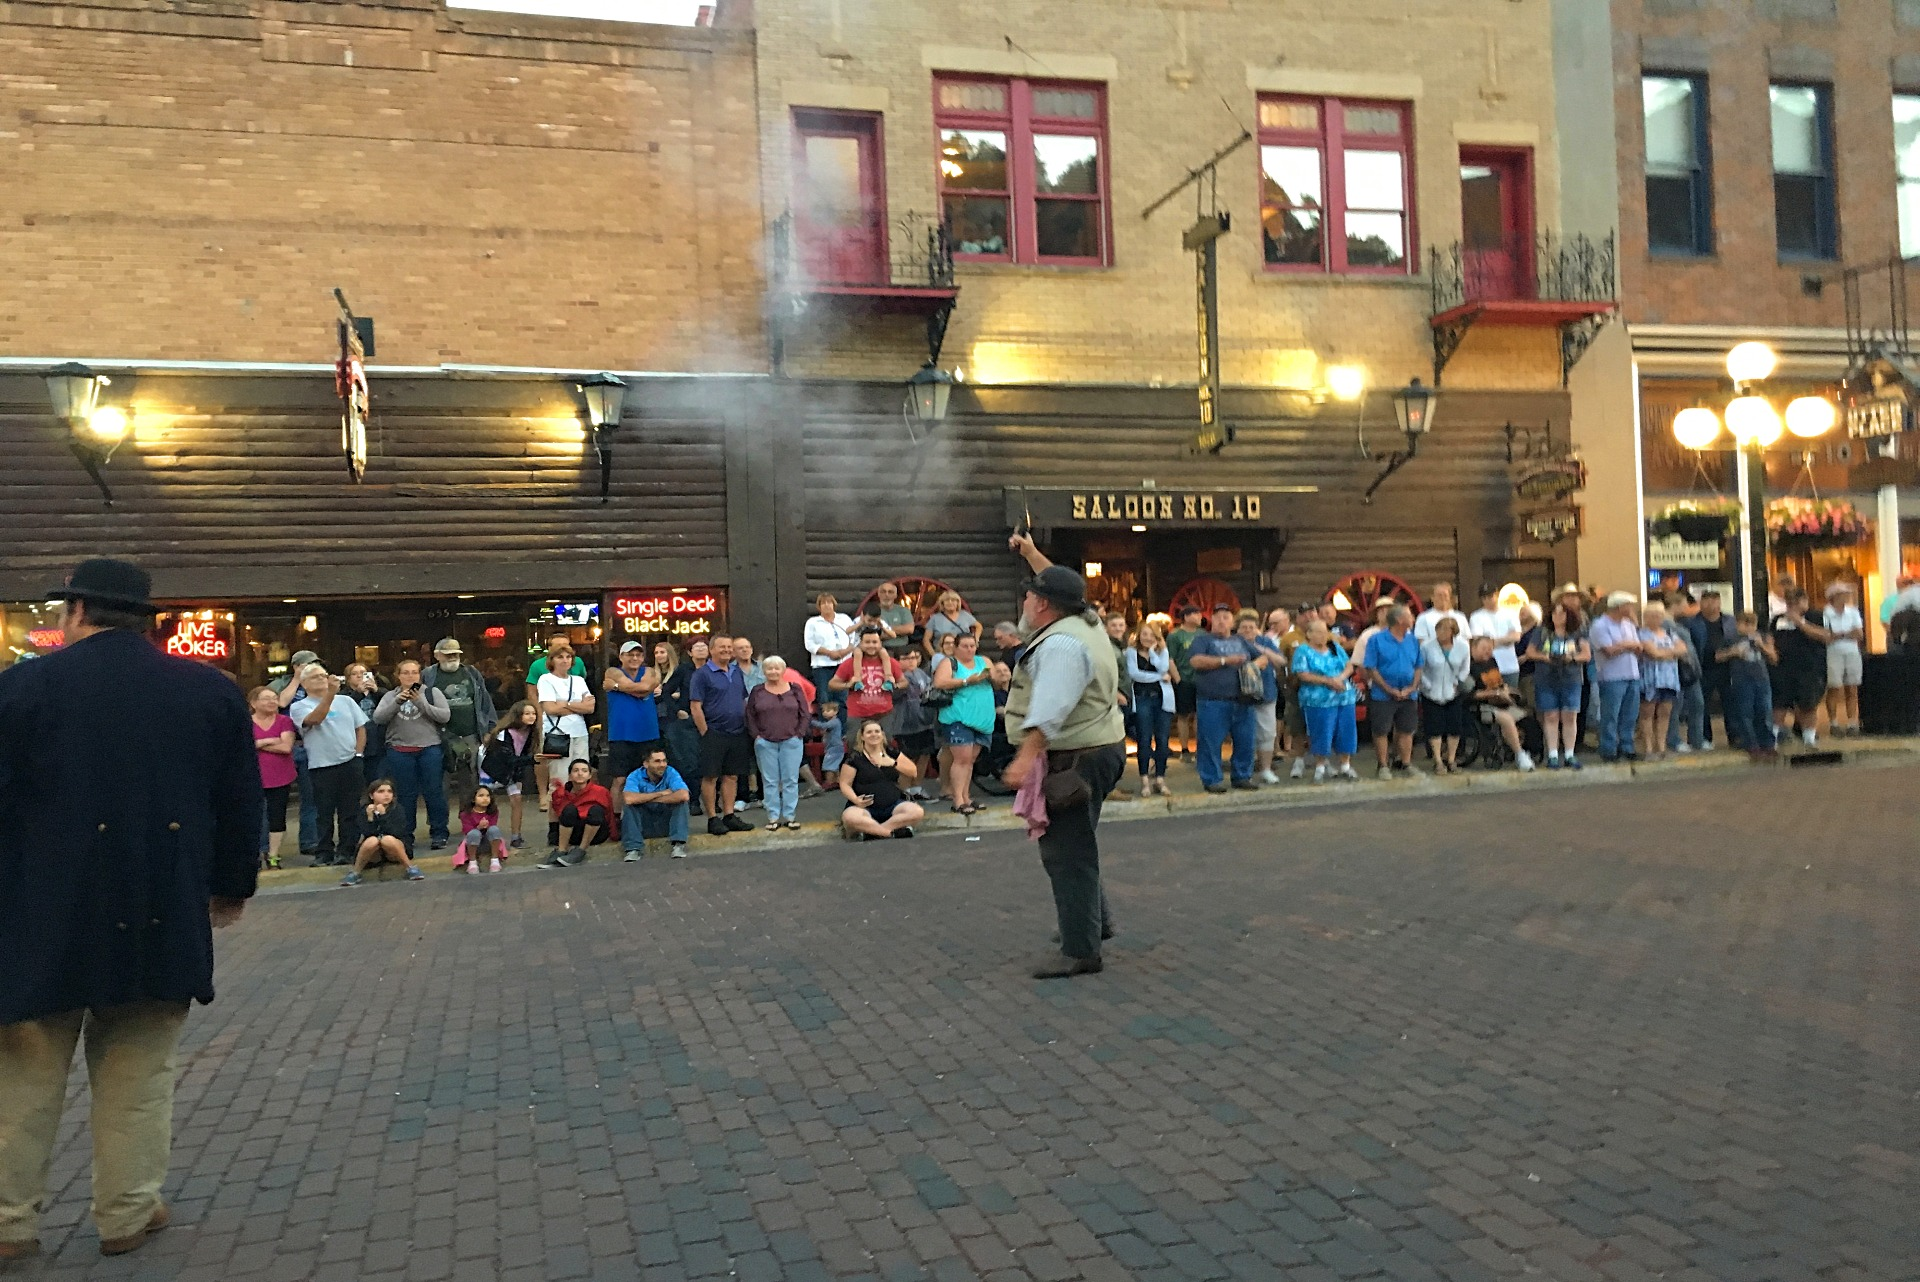 Shootout in Deadwood SD